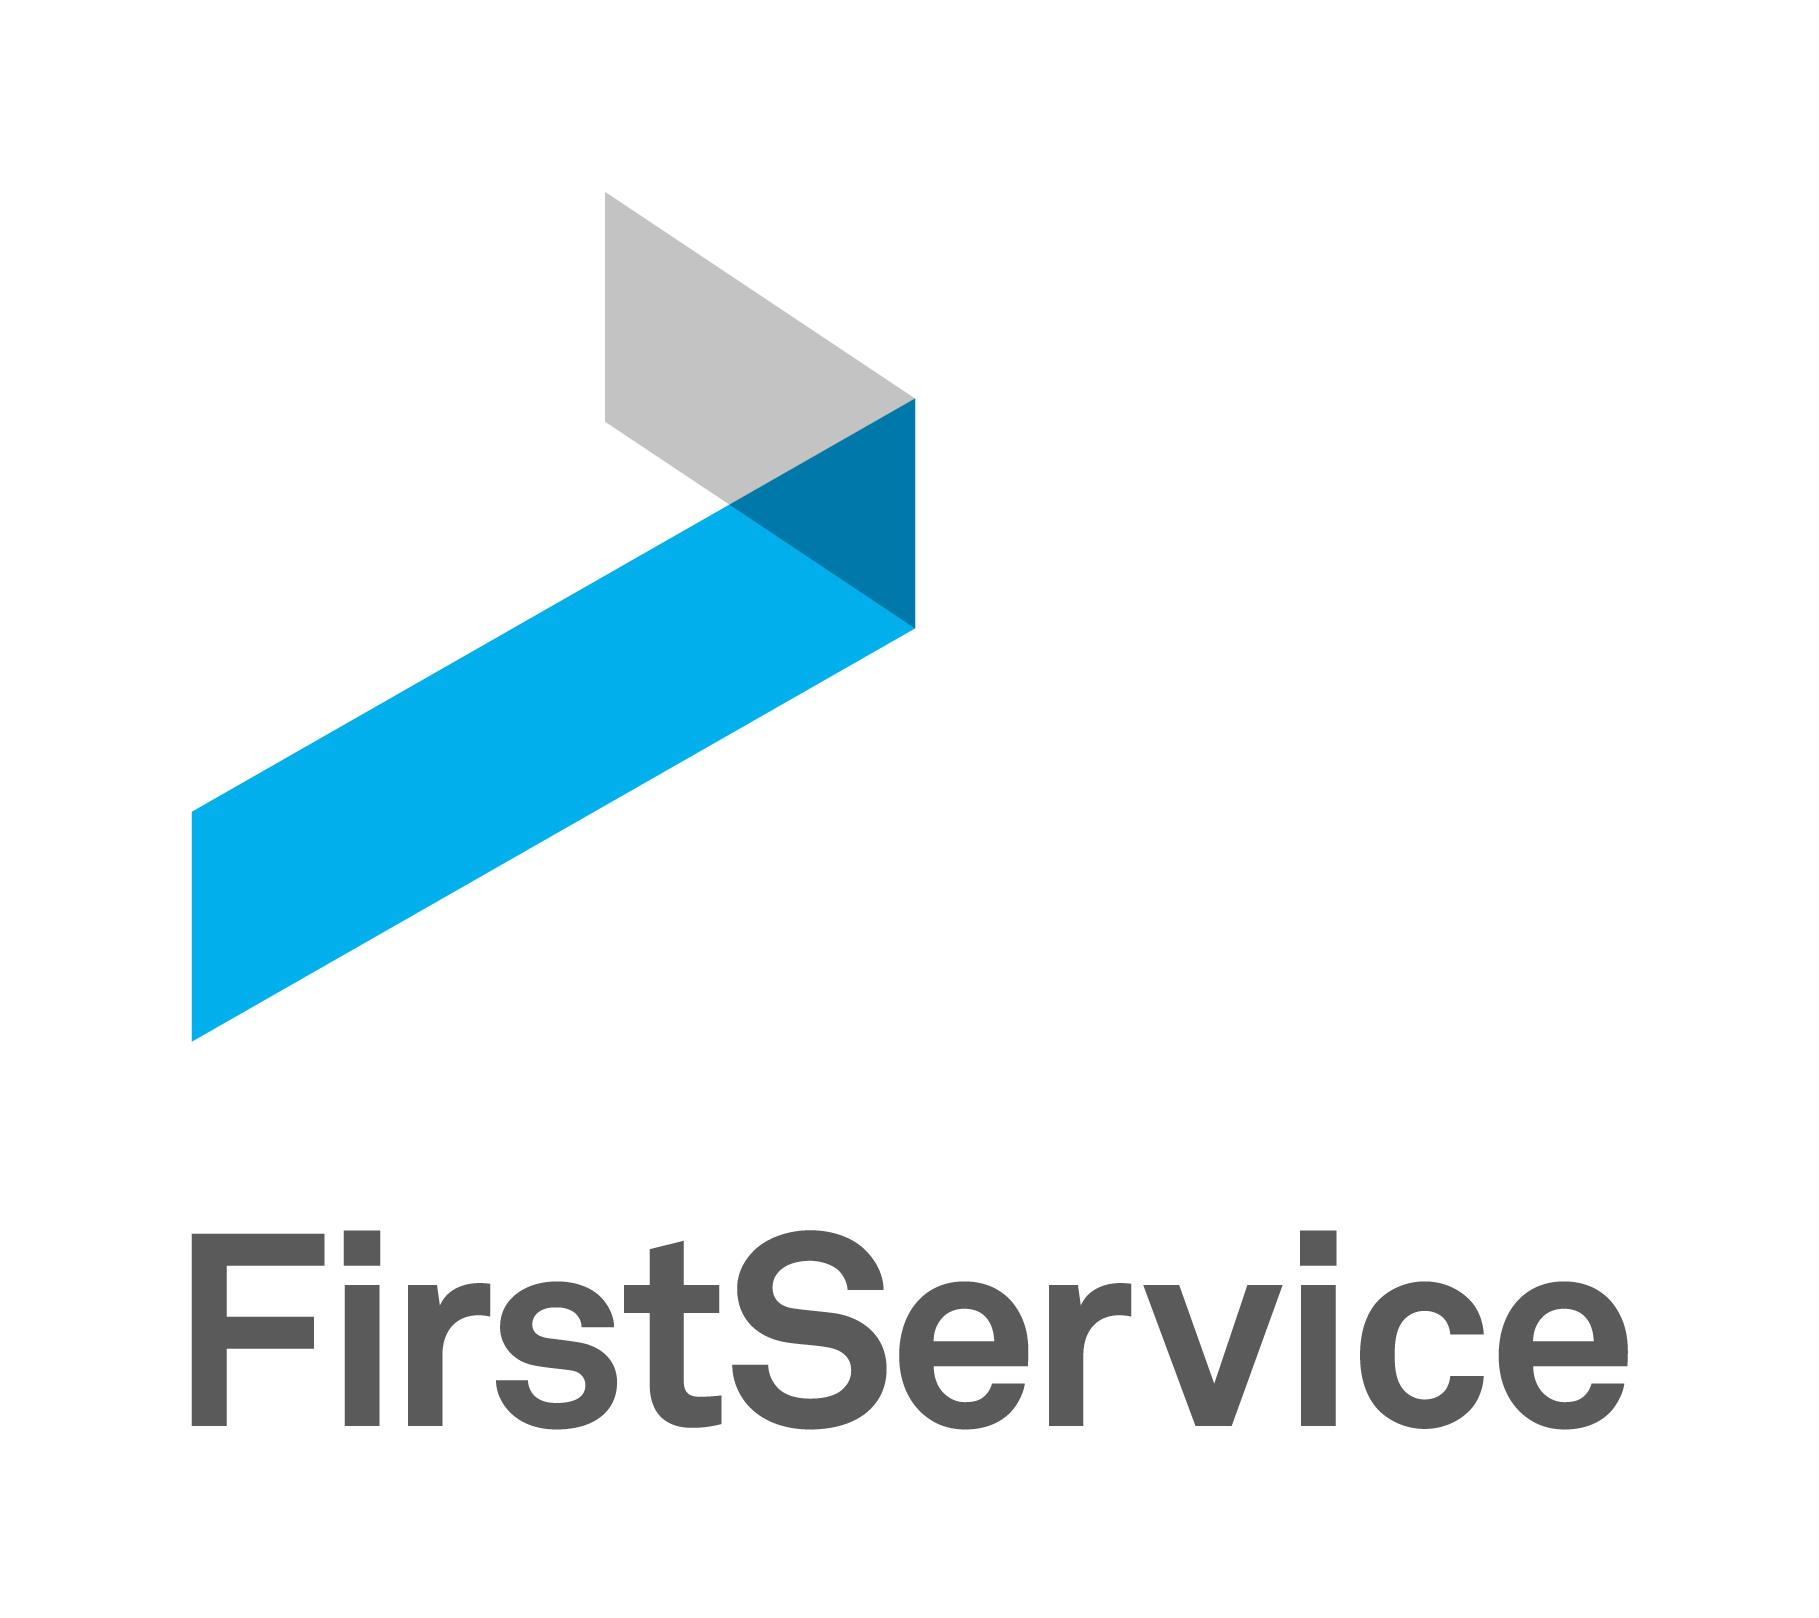 FirstService Adds to California Closets Company-Owned Operations